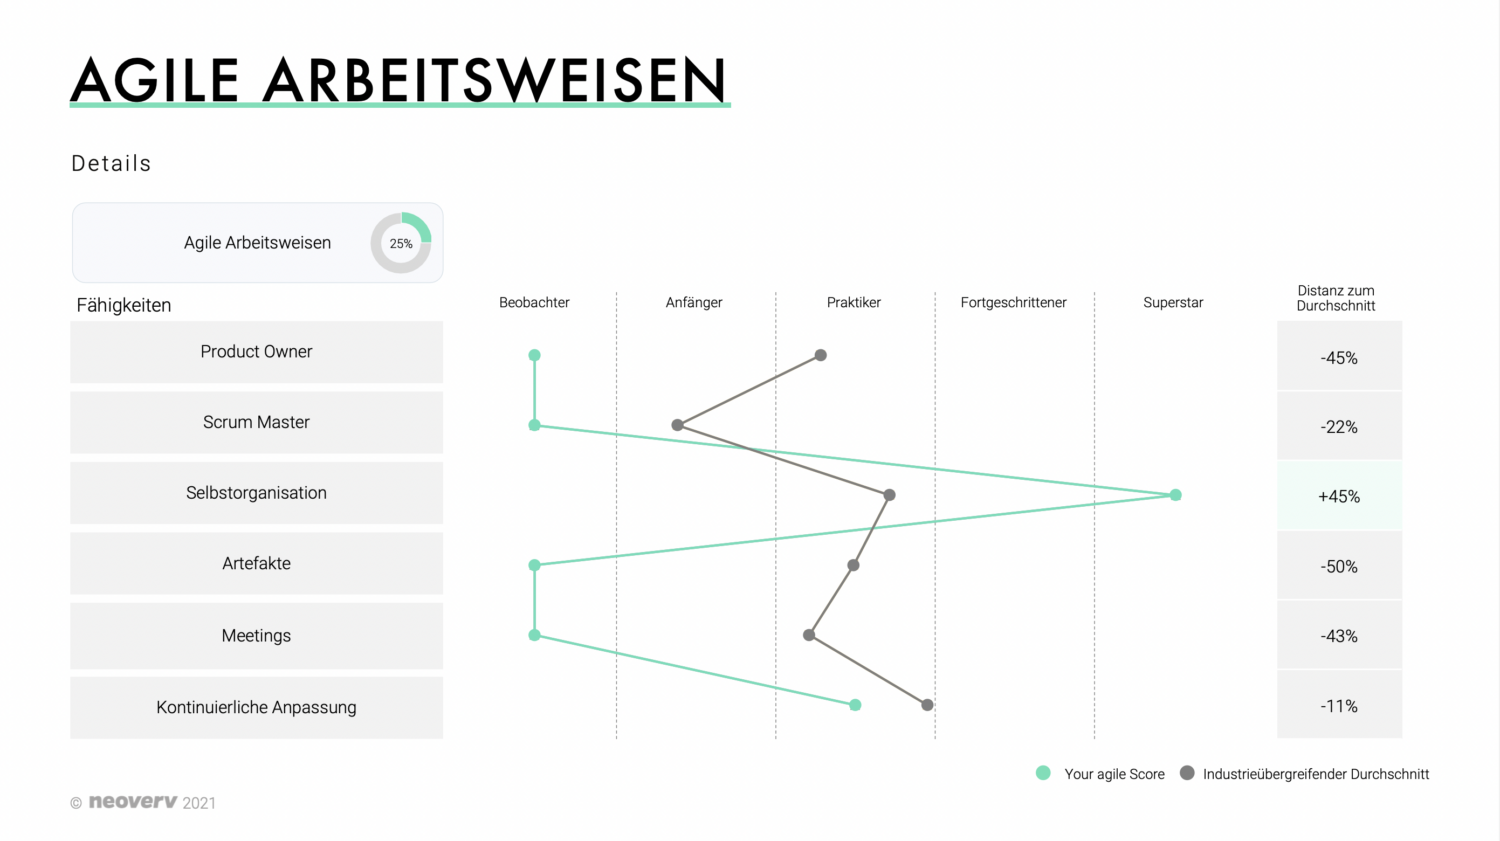 Agile Assessment Report Example - Agile Arbeitsweise